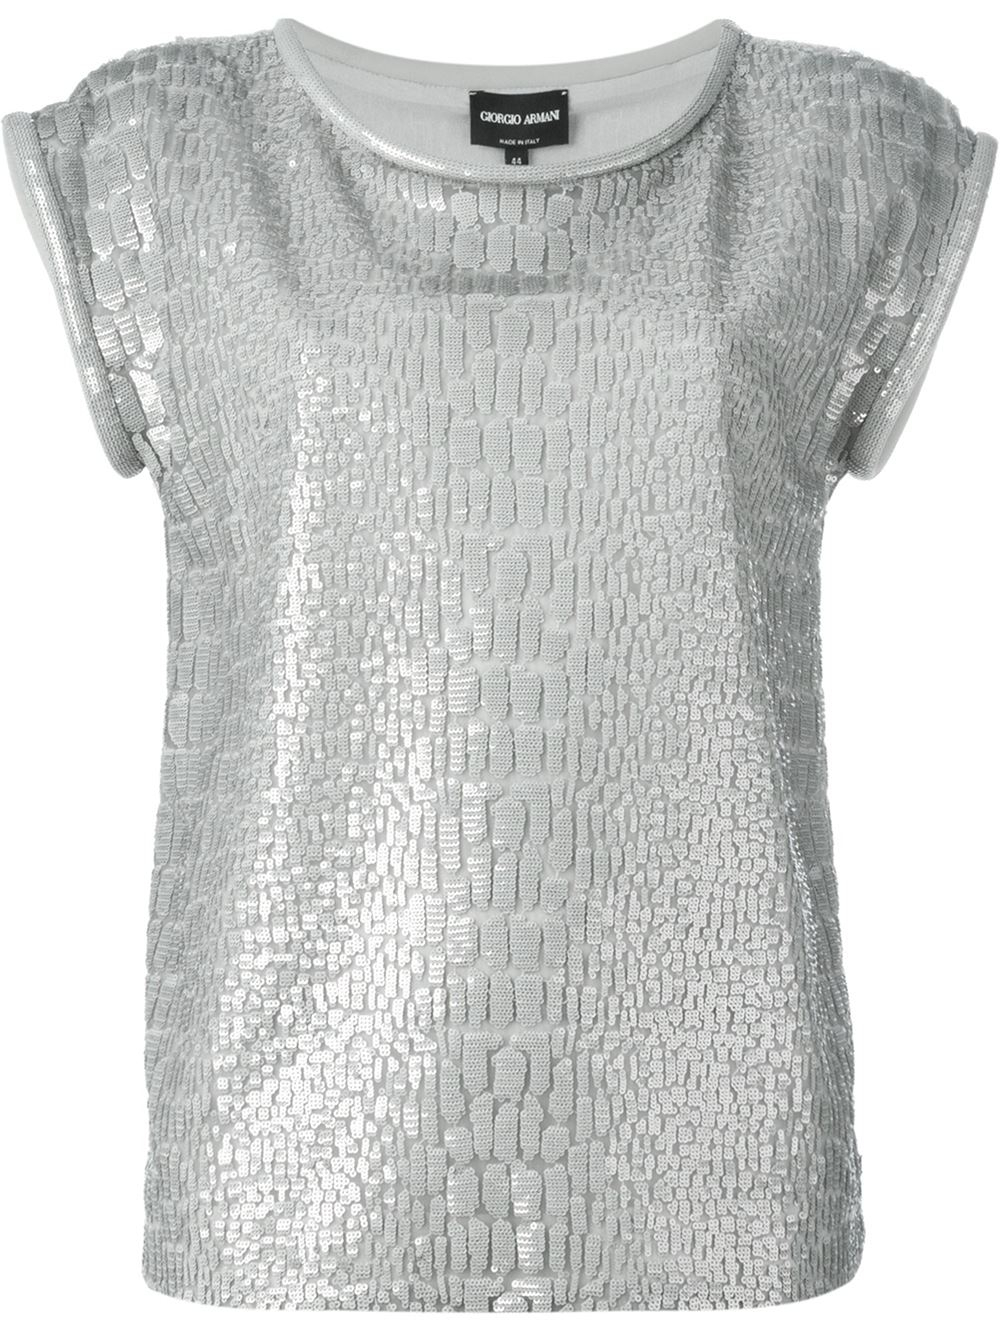 Silver Sequin Shirt Mens